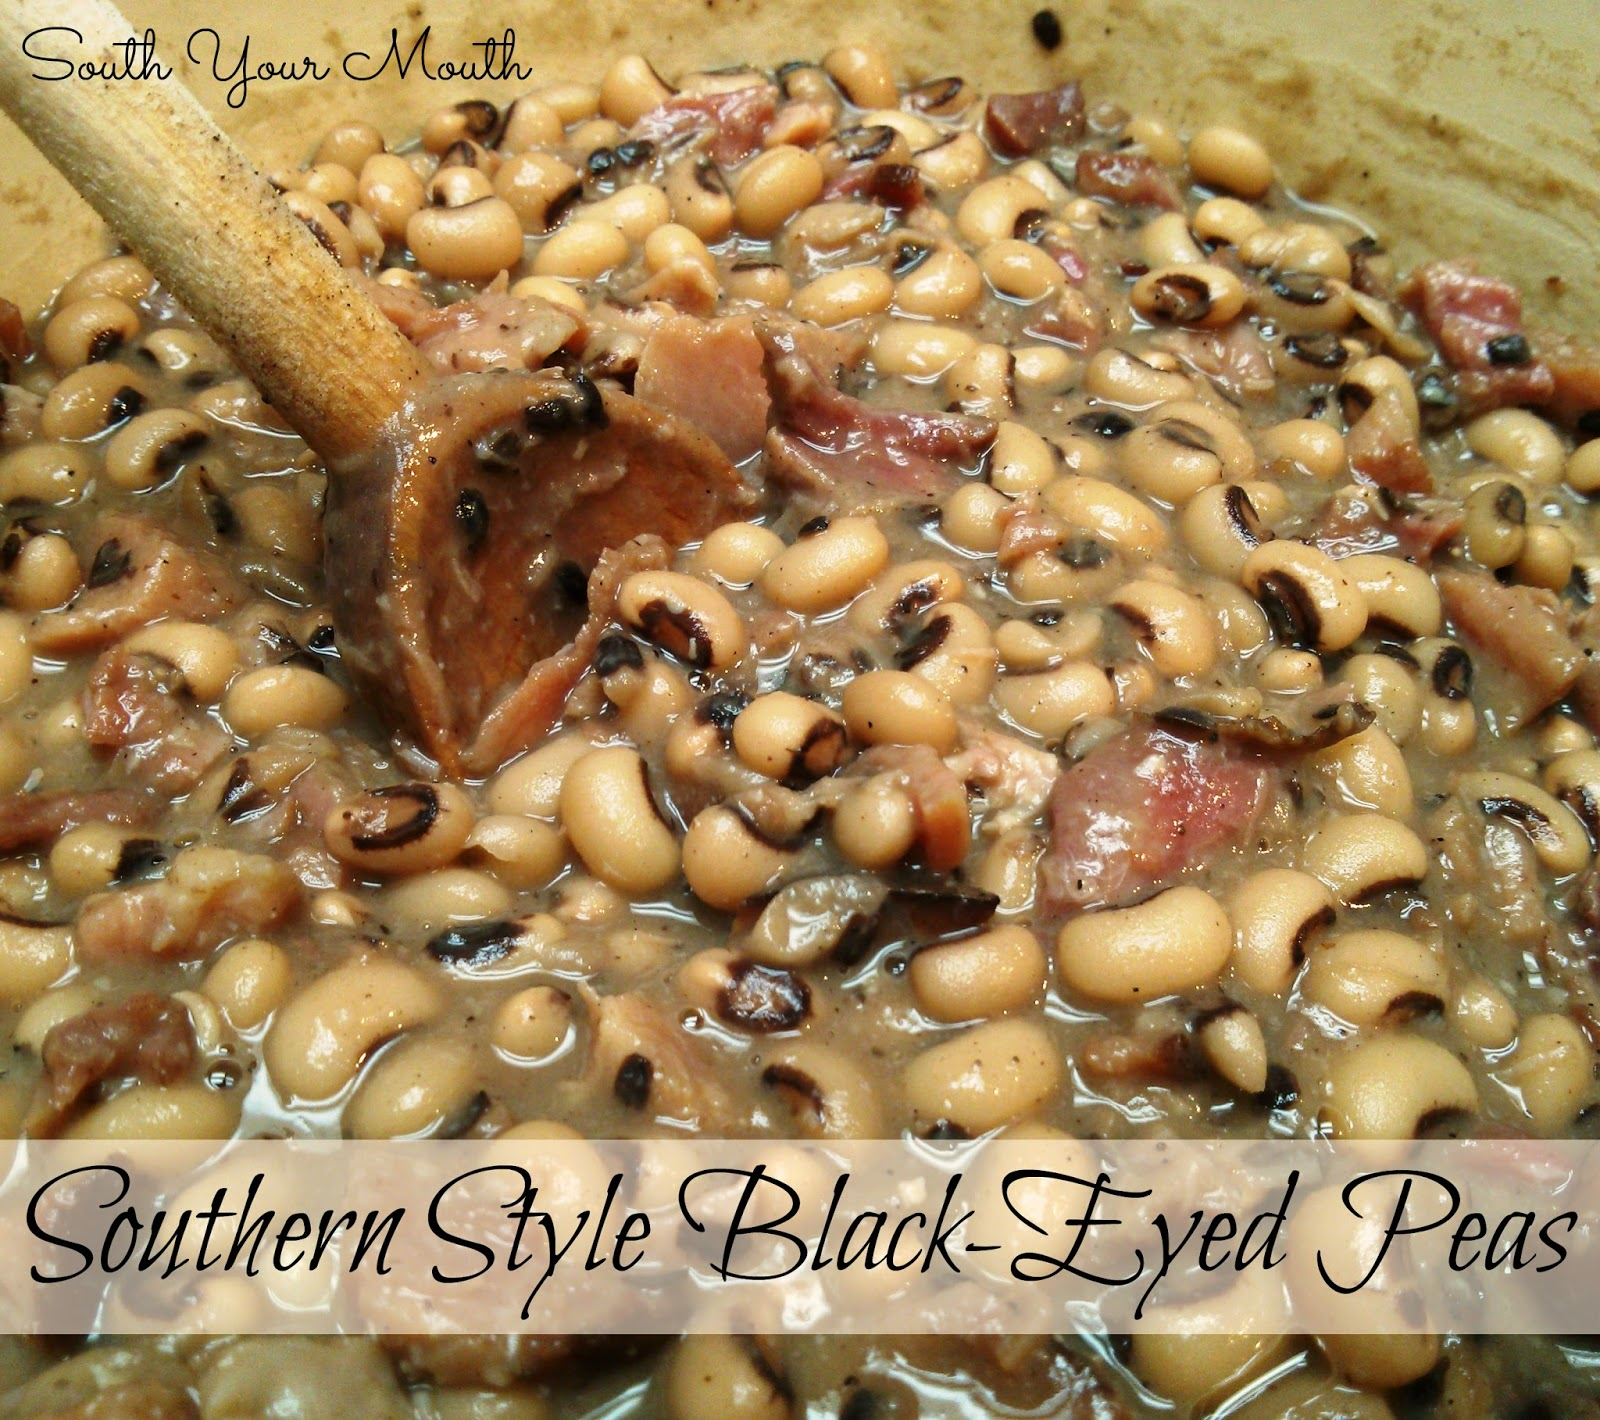 Watch How to Cook Black Eyed Peas video